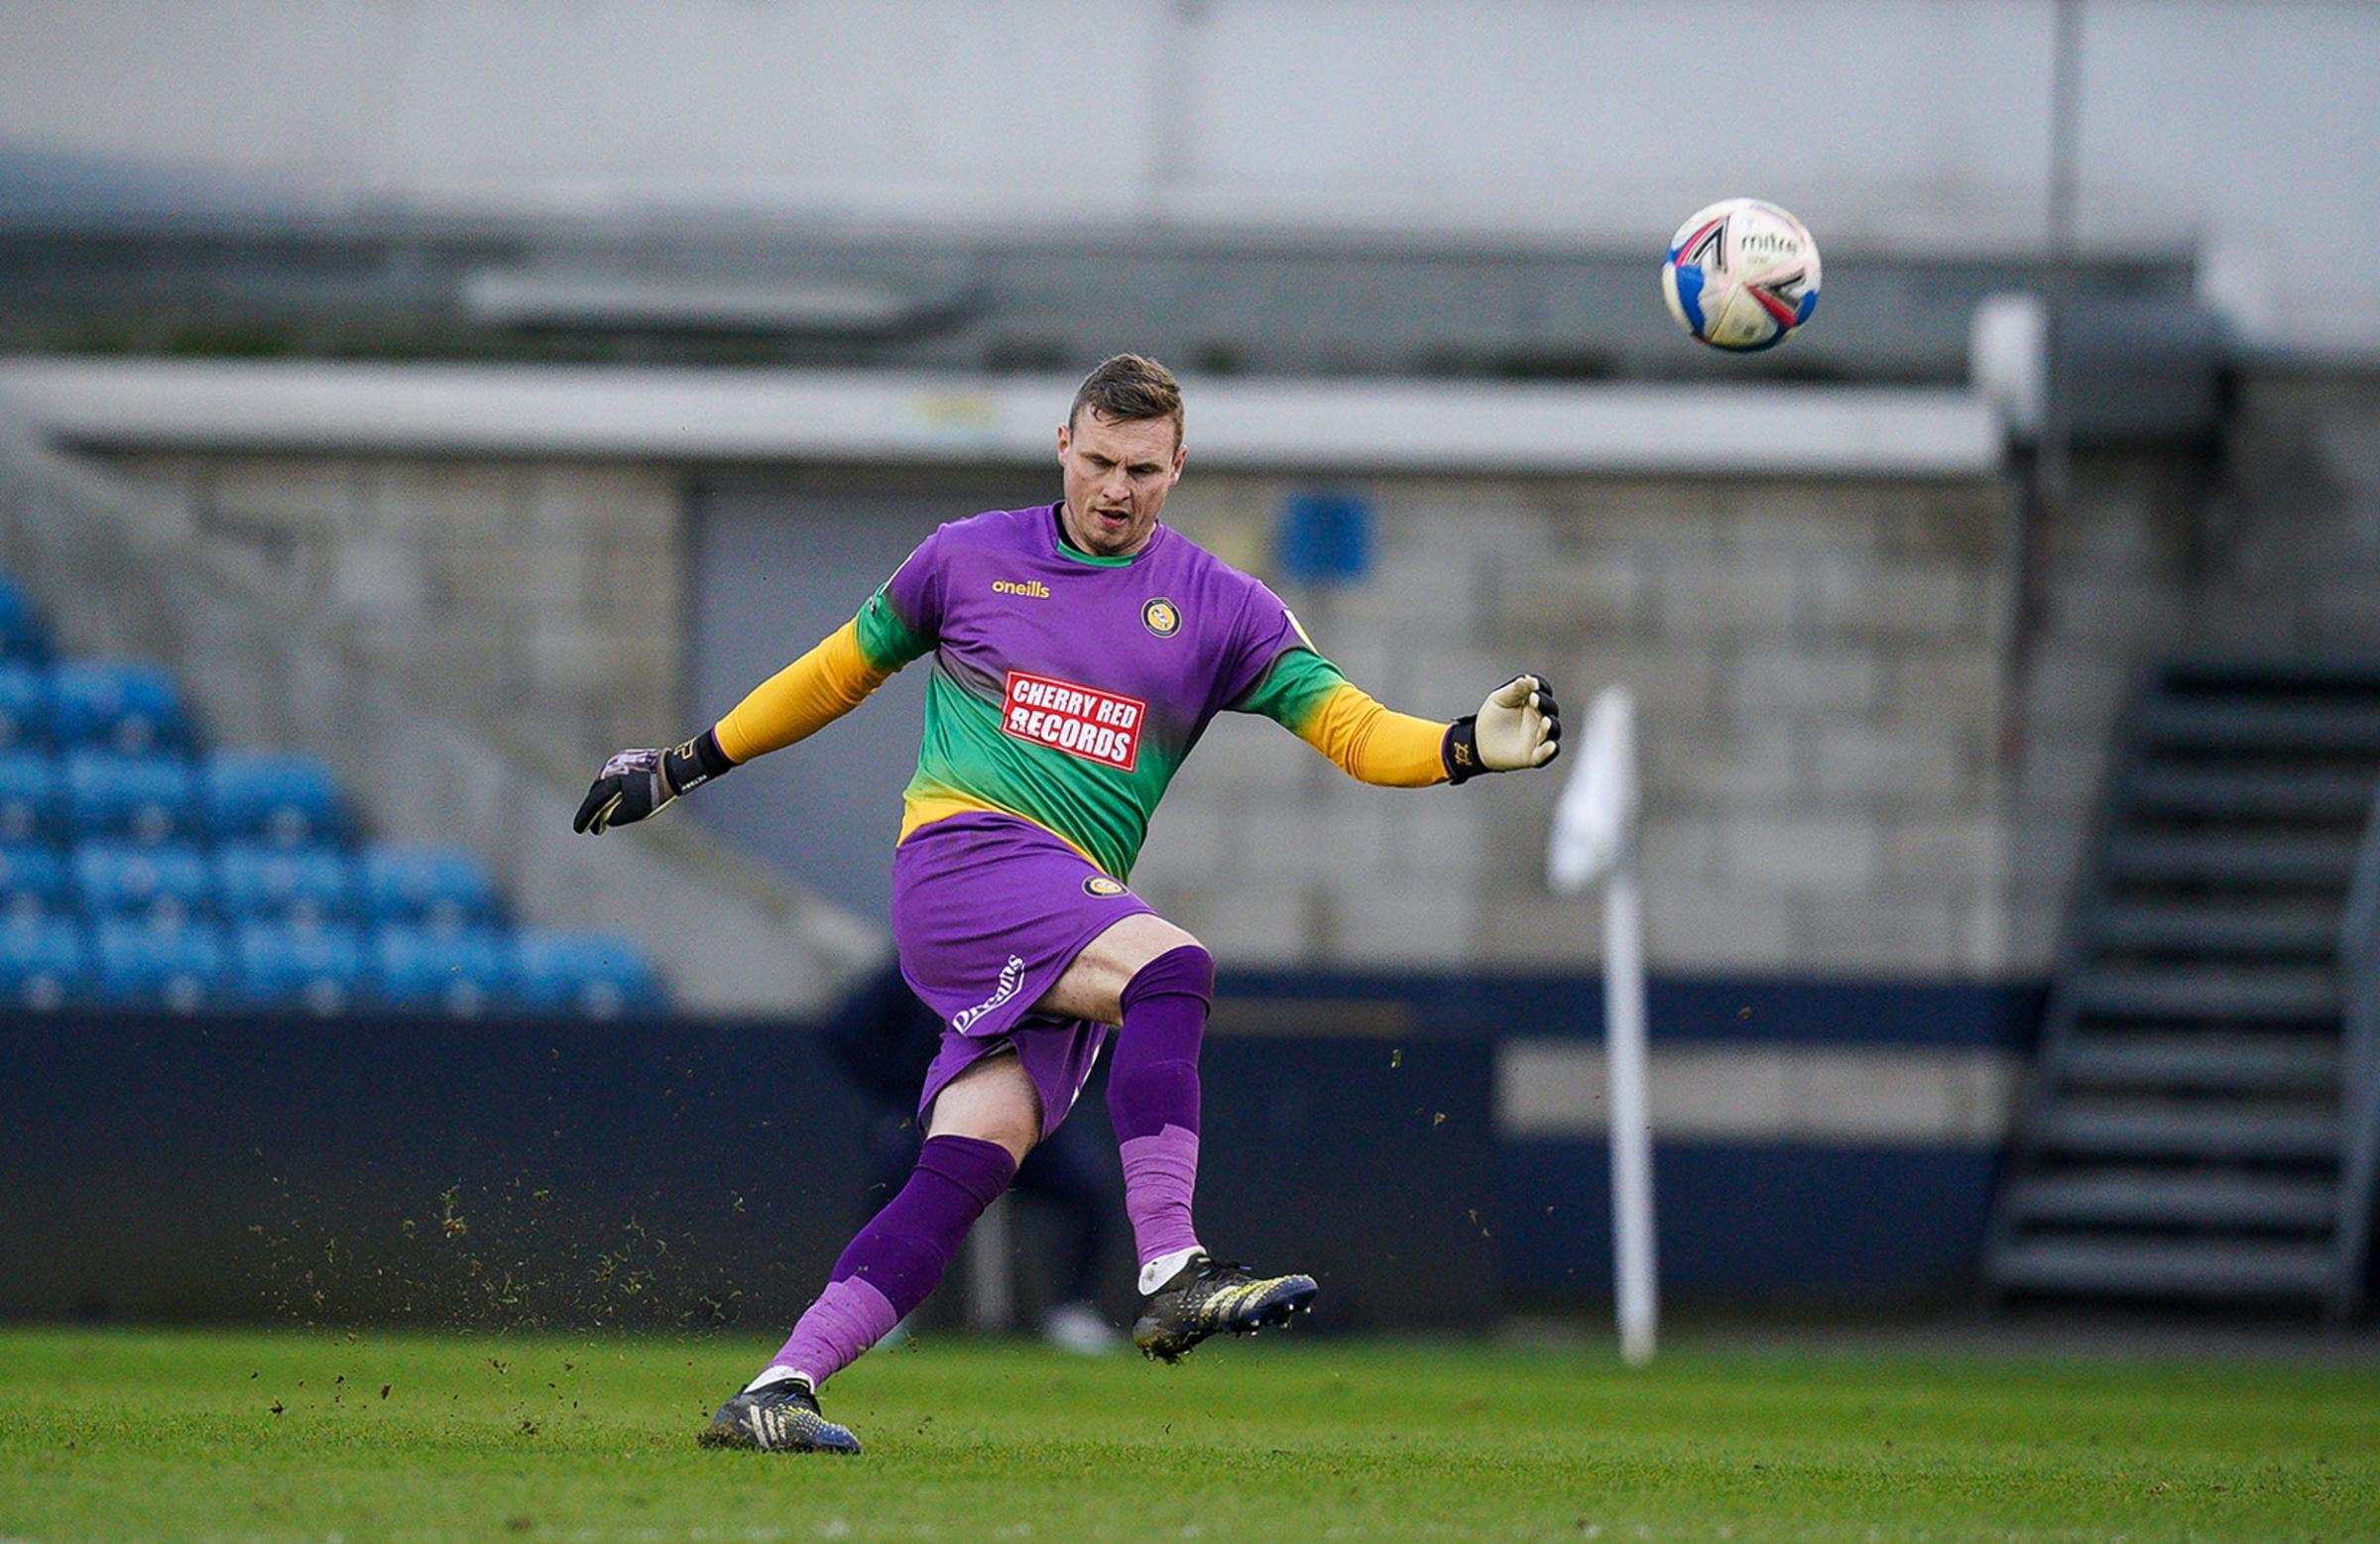 David Stockdale kept his first clean sheet for Wycombe in the 0-0 draw against Millwall (Prime Media)